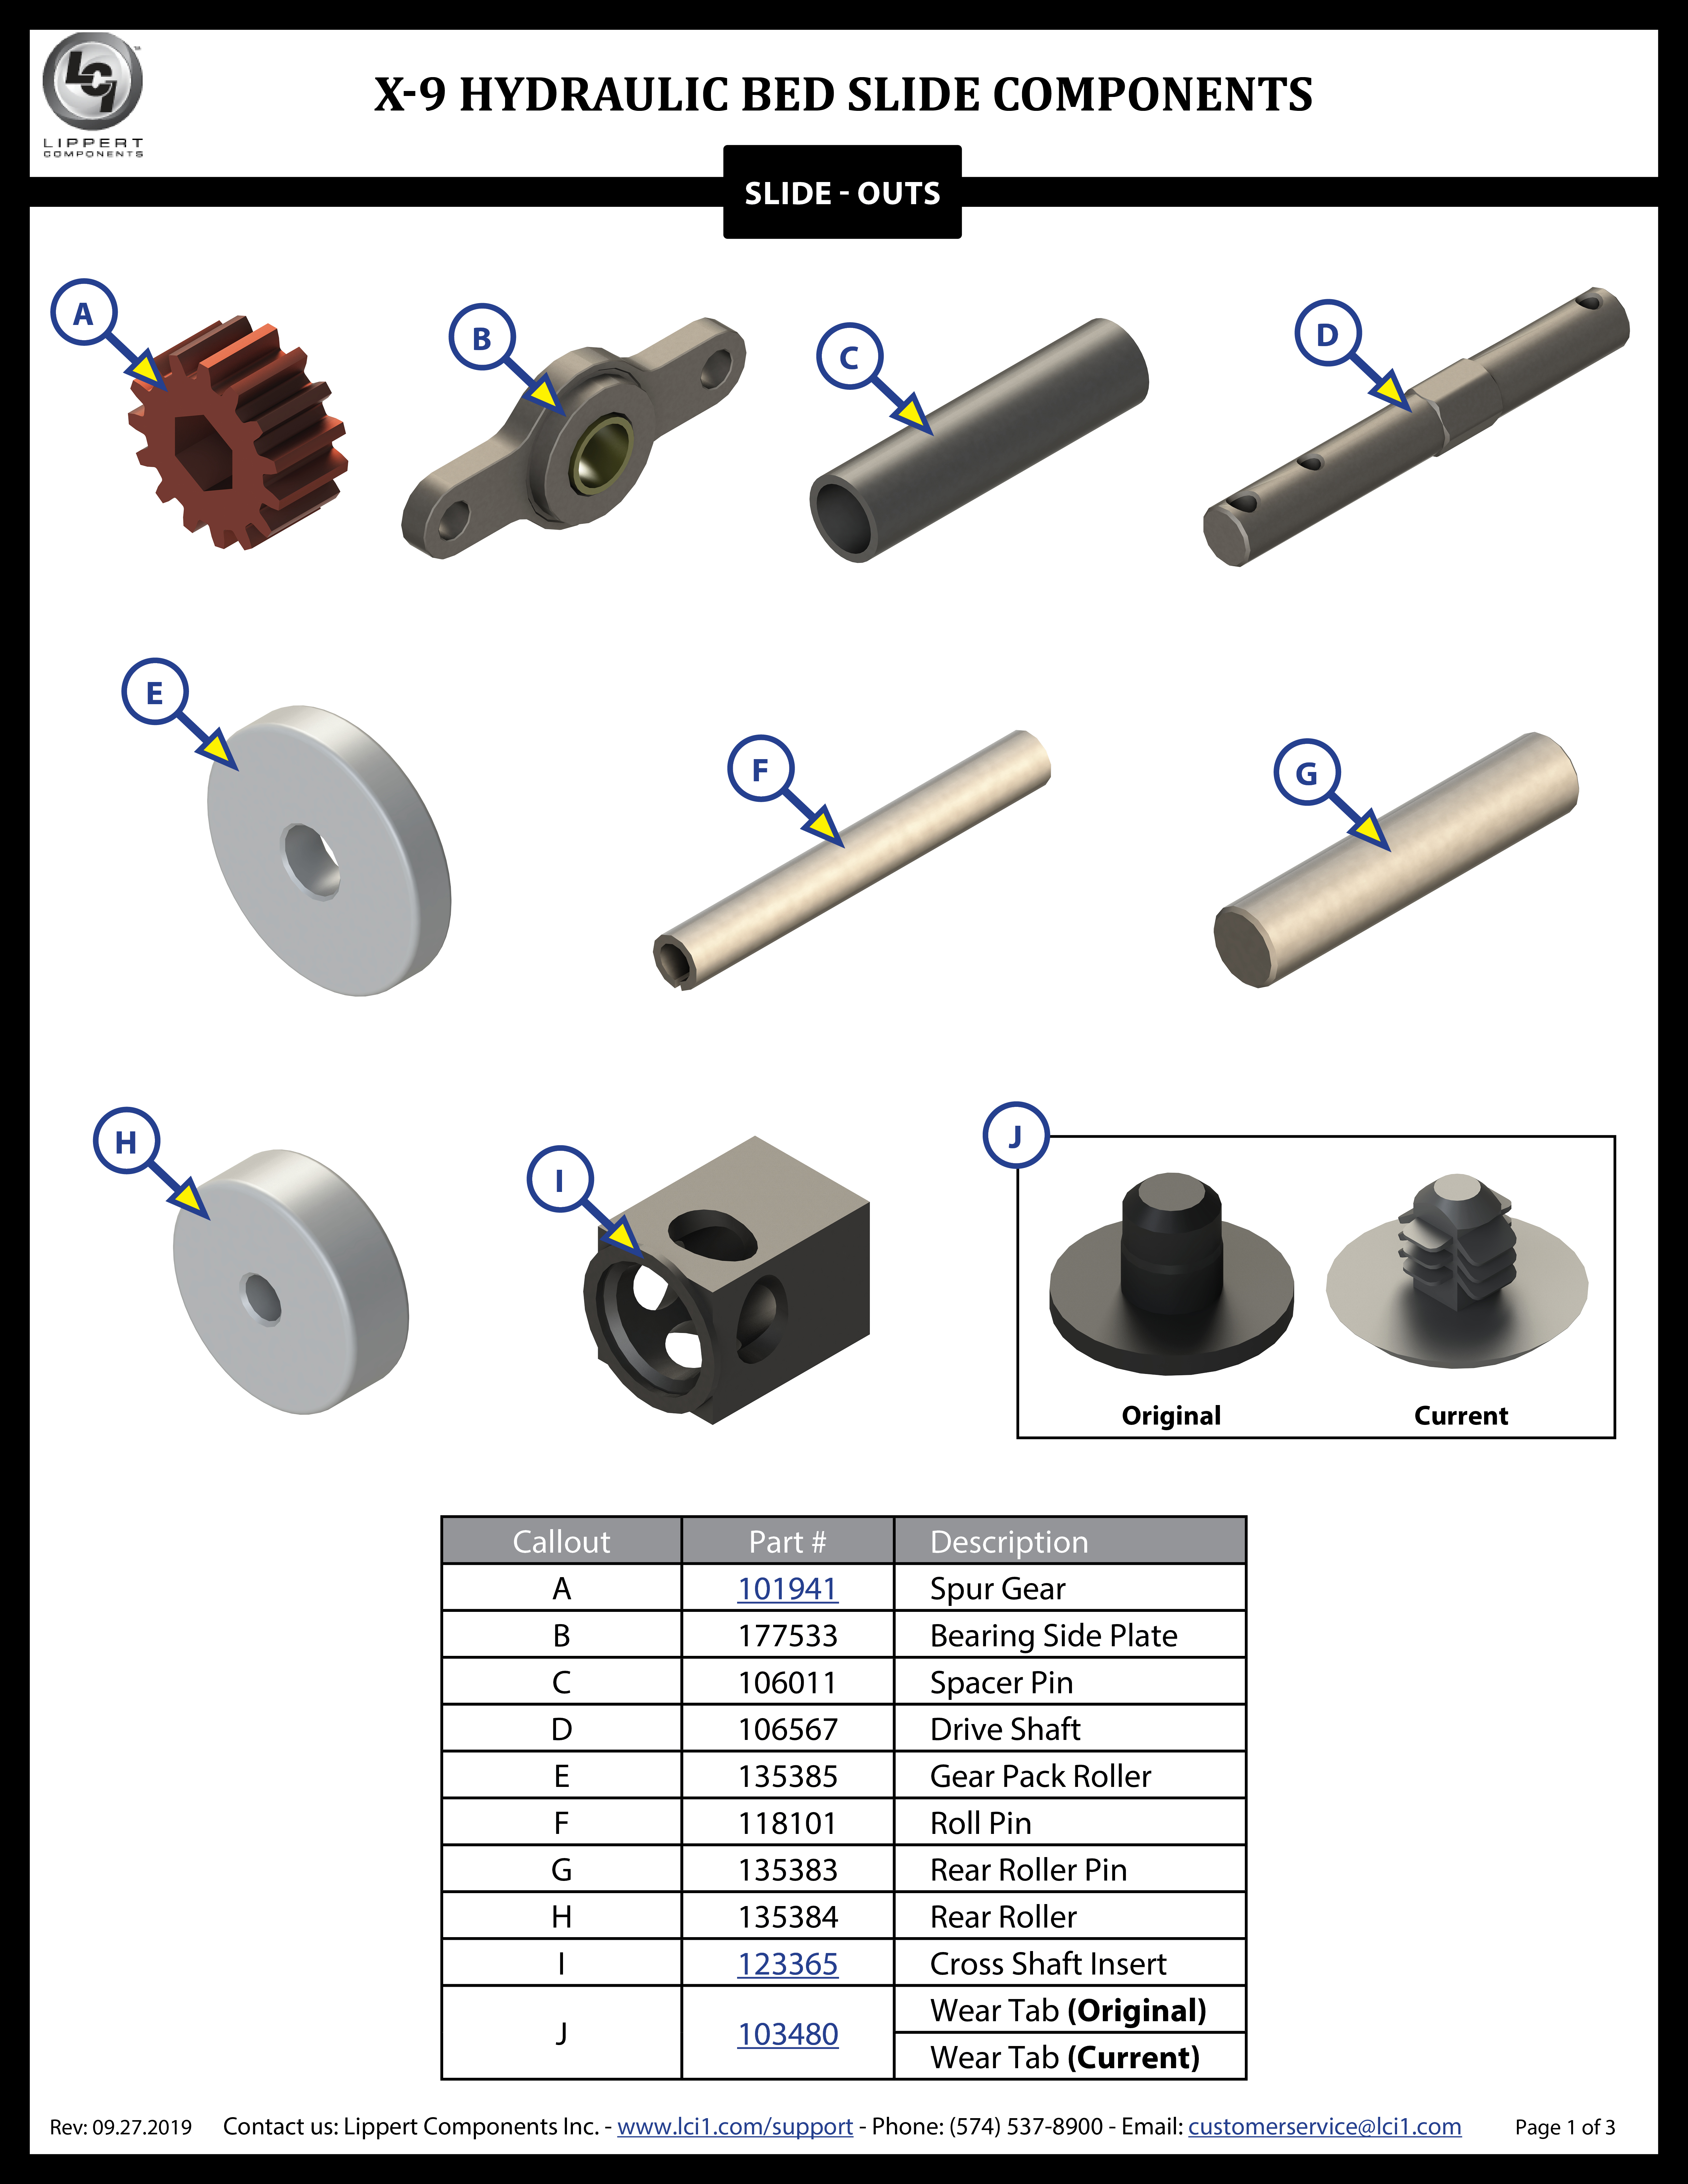 X-9 Hydraulic Bed Slide System Components